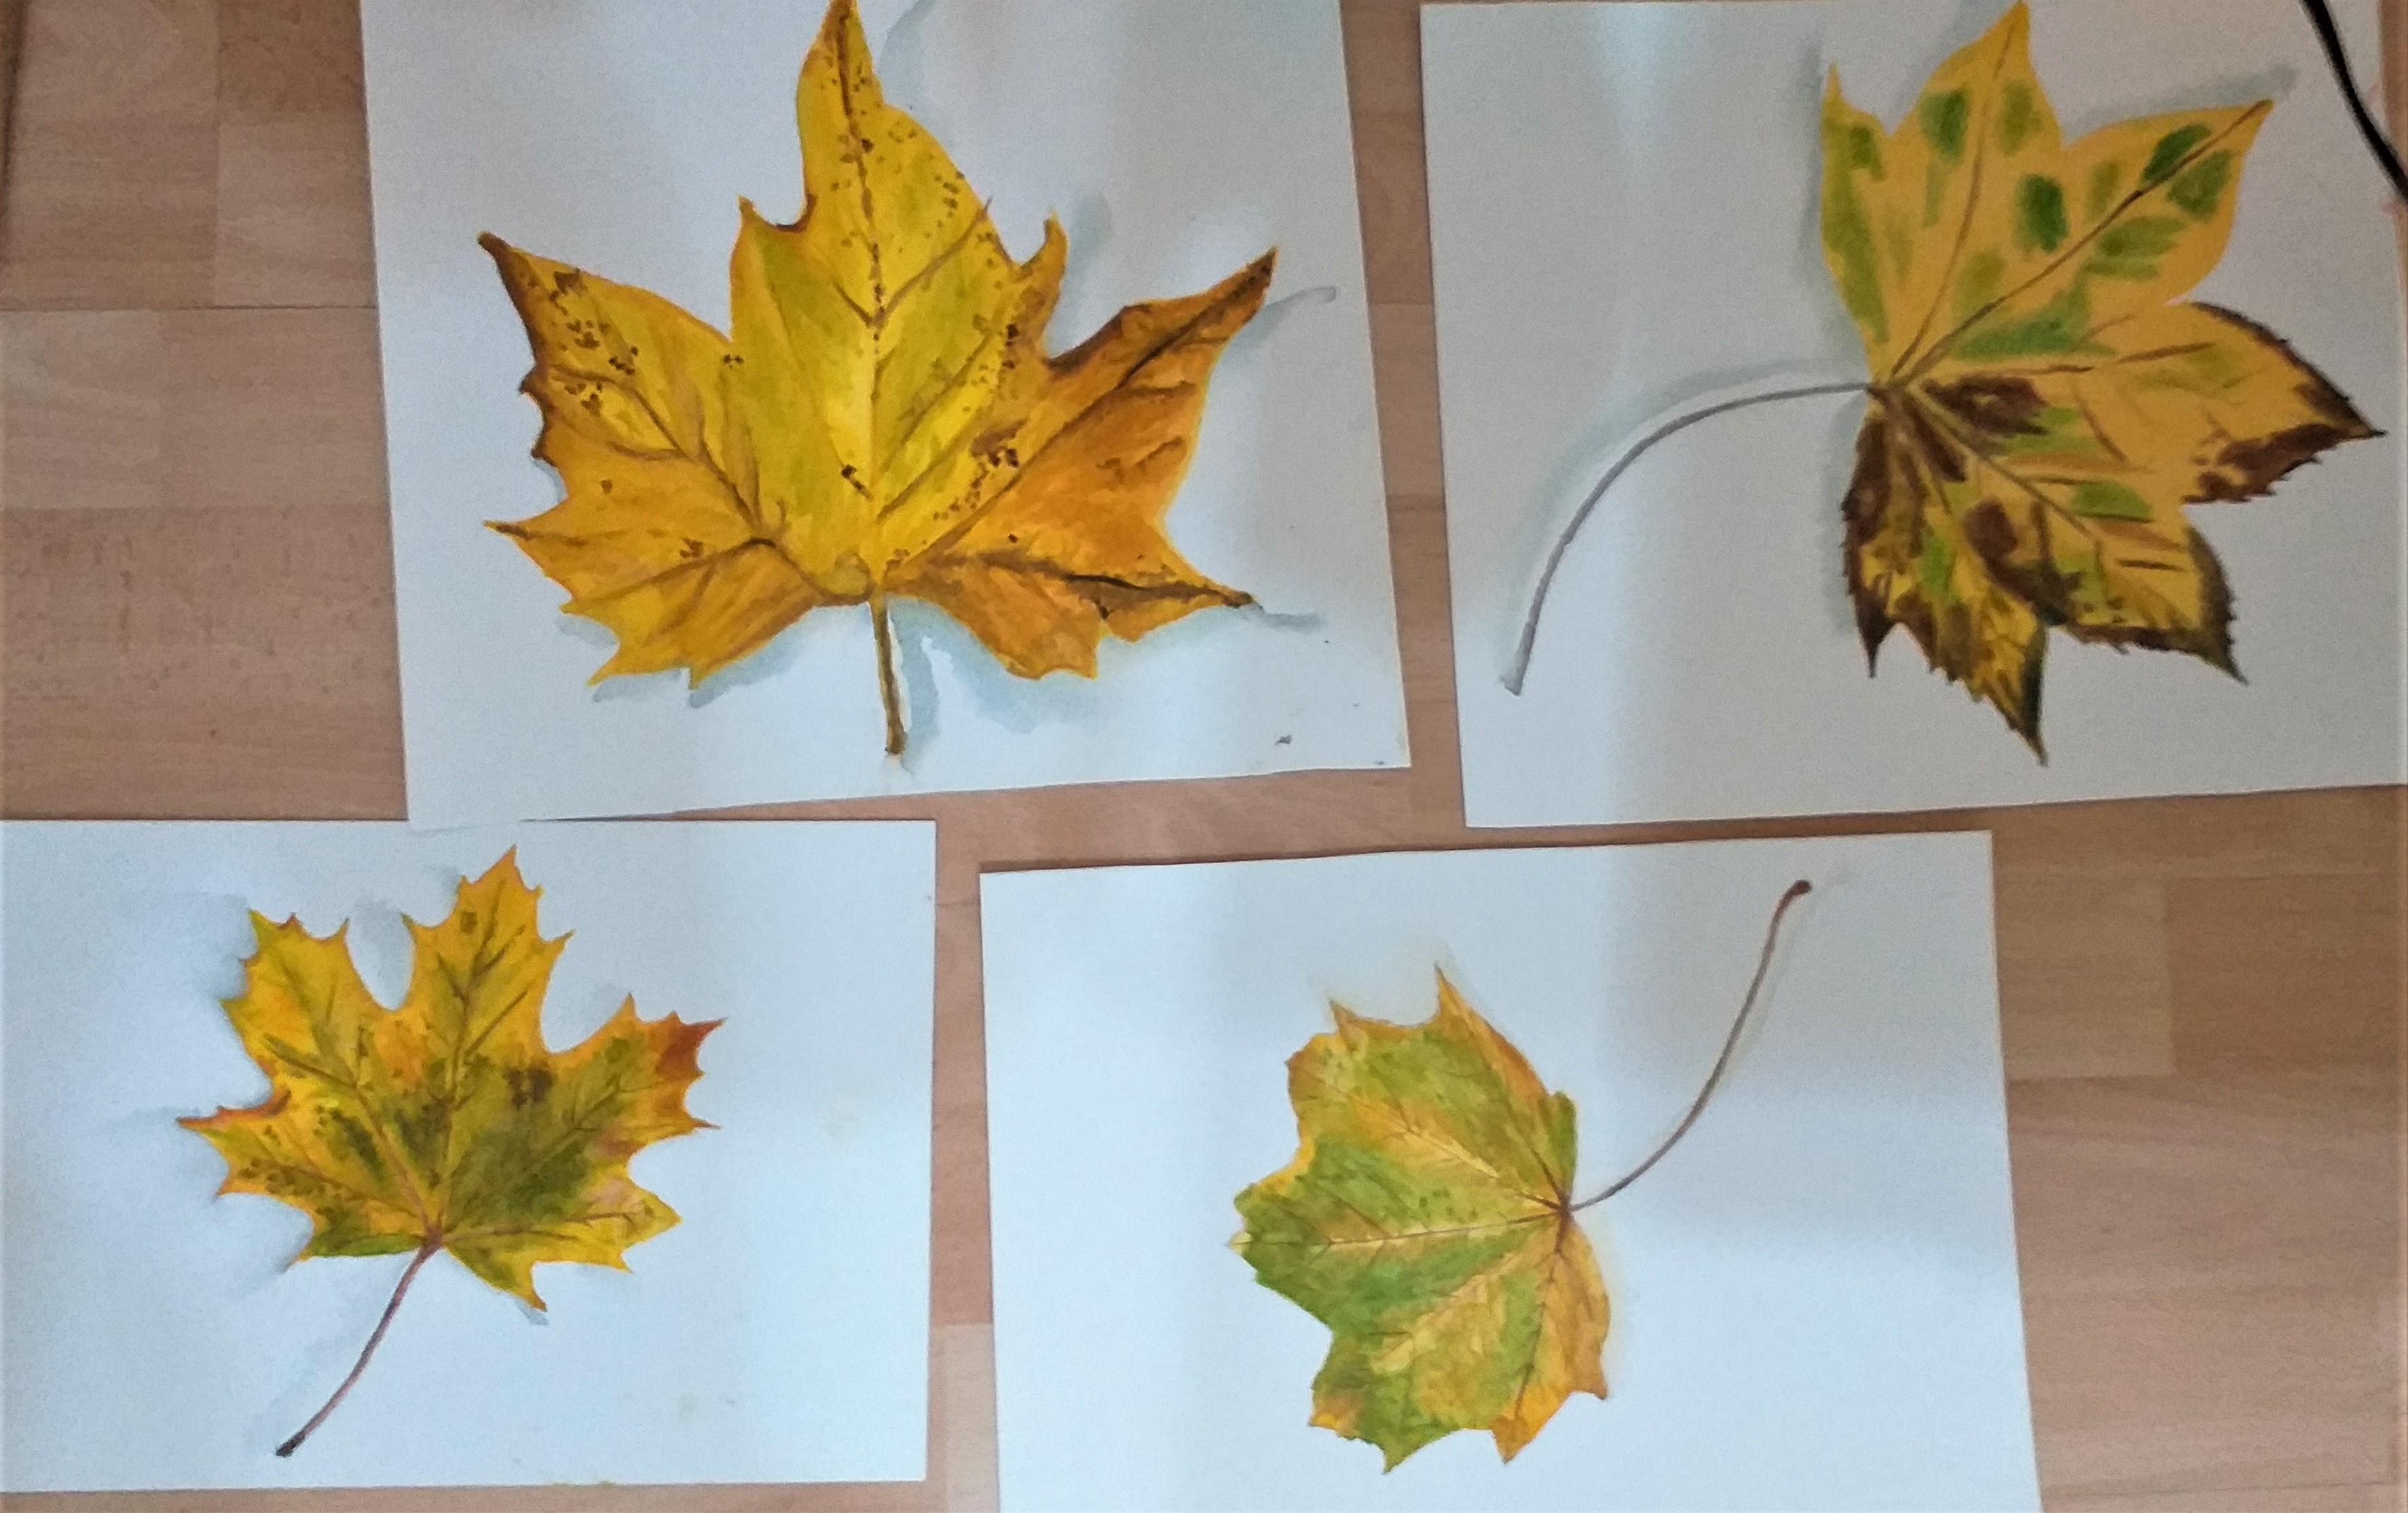 Students's watercolour paintings of Autumn leaves created at art classes with Raya Brown